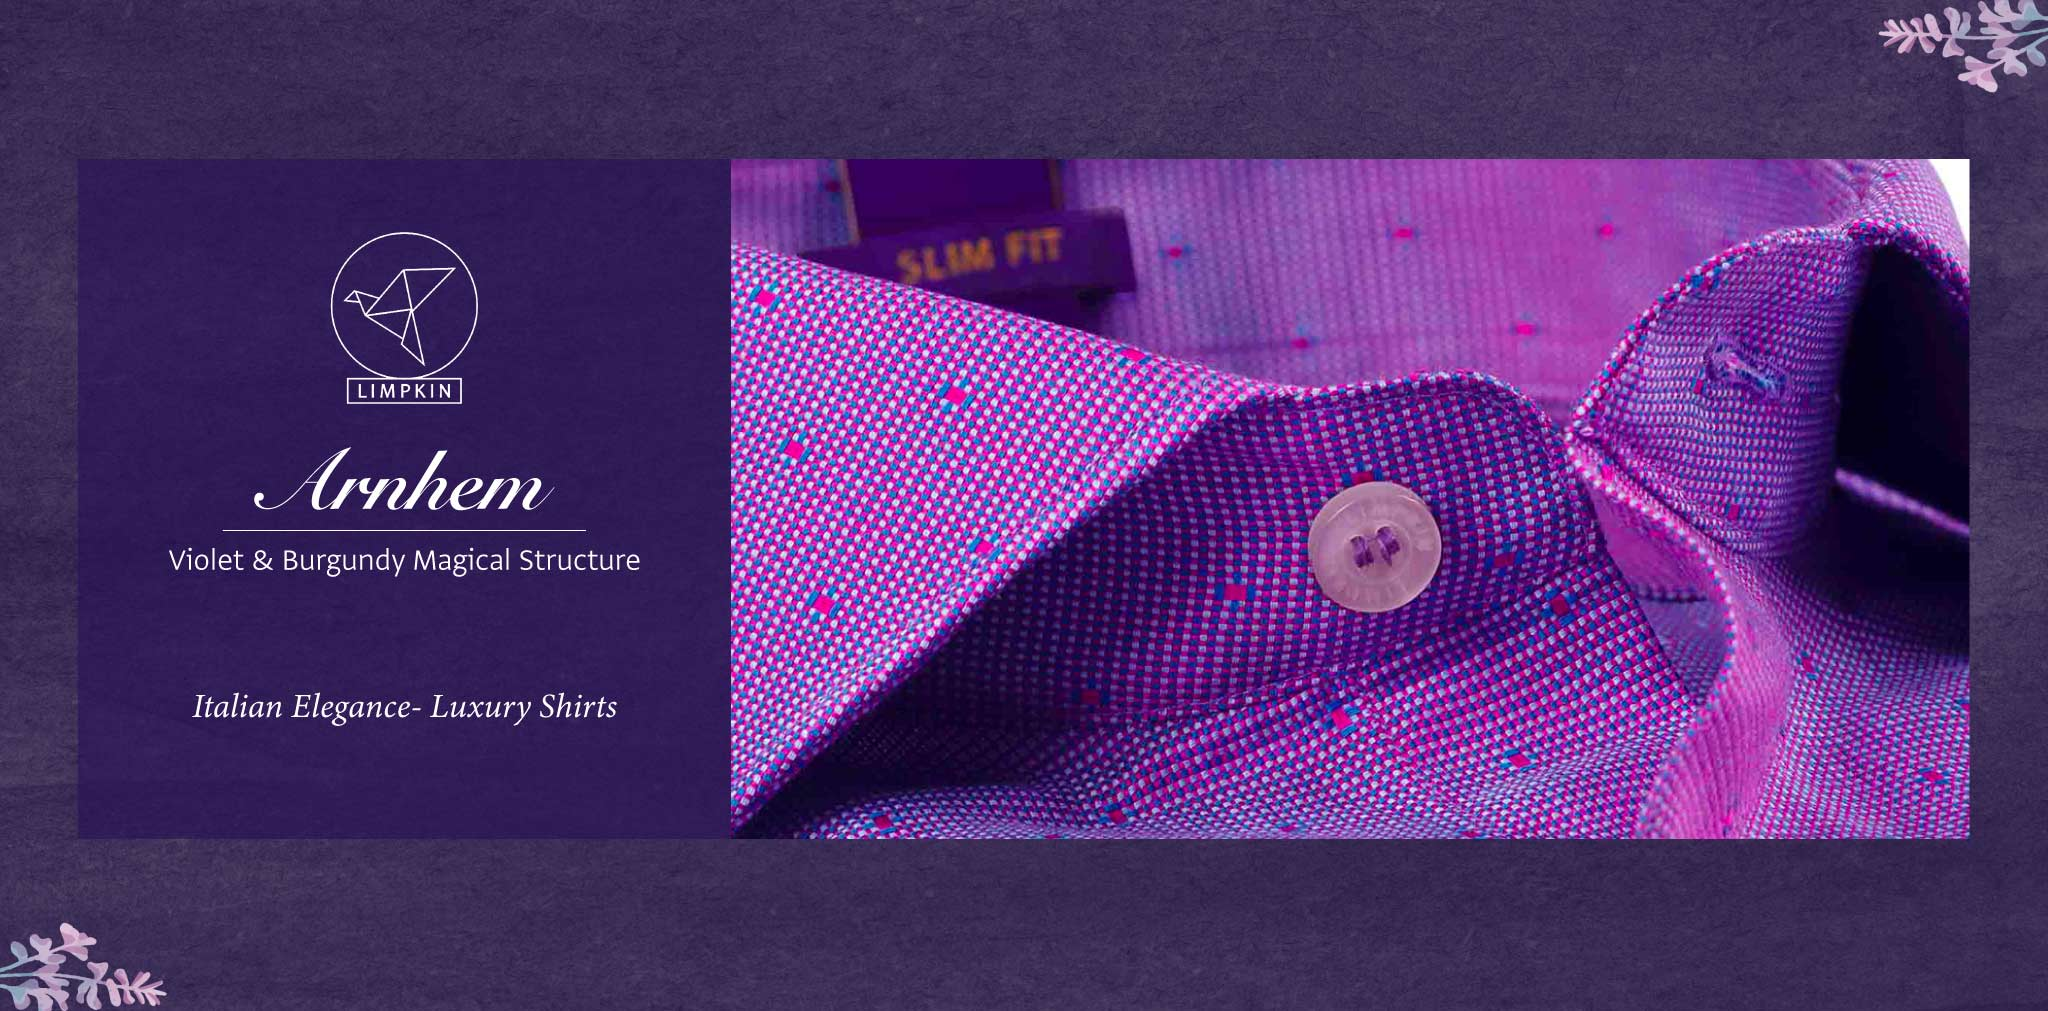 Arnhem- Violet & Burgundy Magical Structure- 2 Ply Pure Egyptian Giza Cotton- Delivery from 4th August - Banner